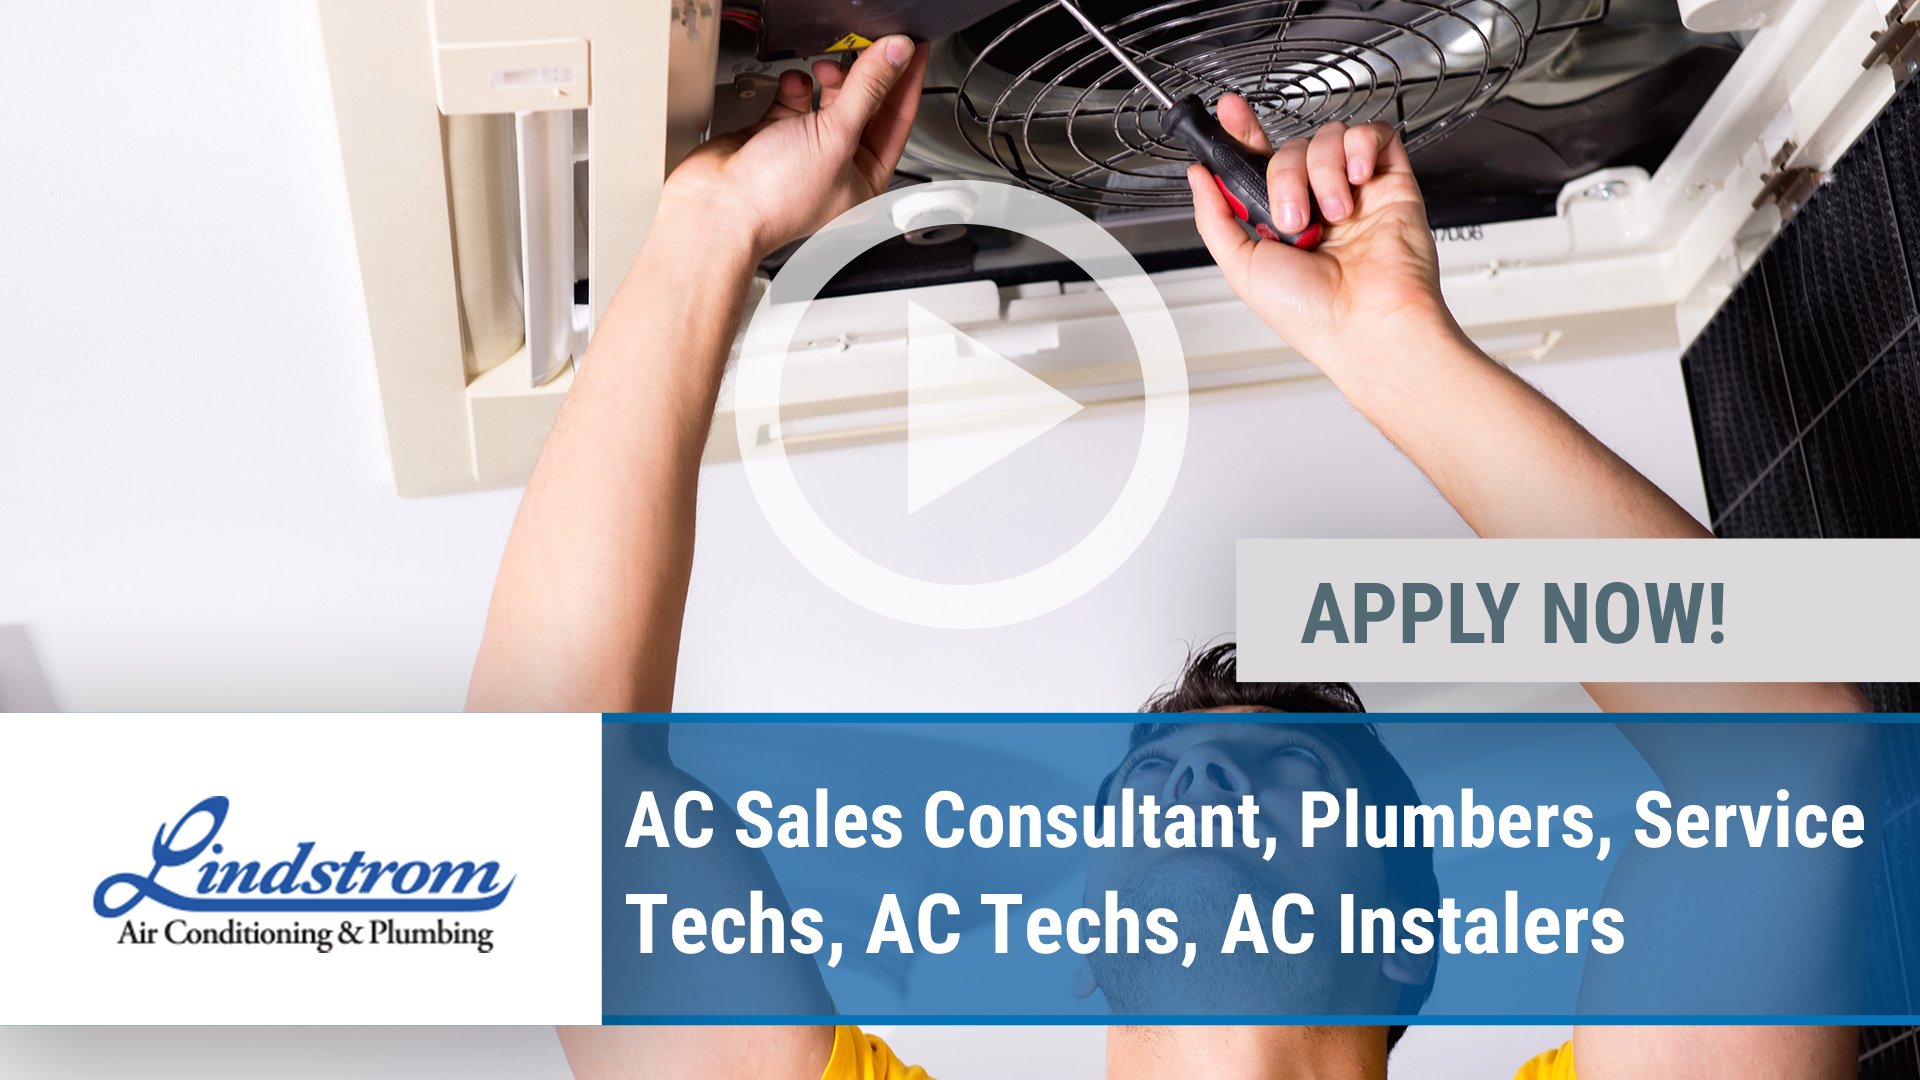 Watch our careers video for available job opening AC Sales Consultant, Plumbers, Service Techs, AC  in Pompano Beach, FL